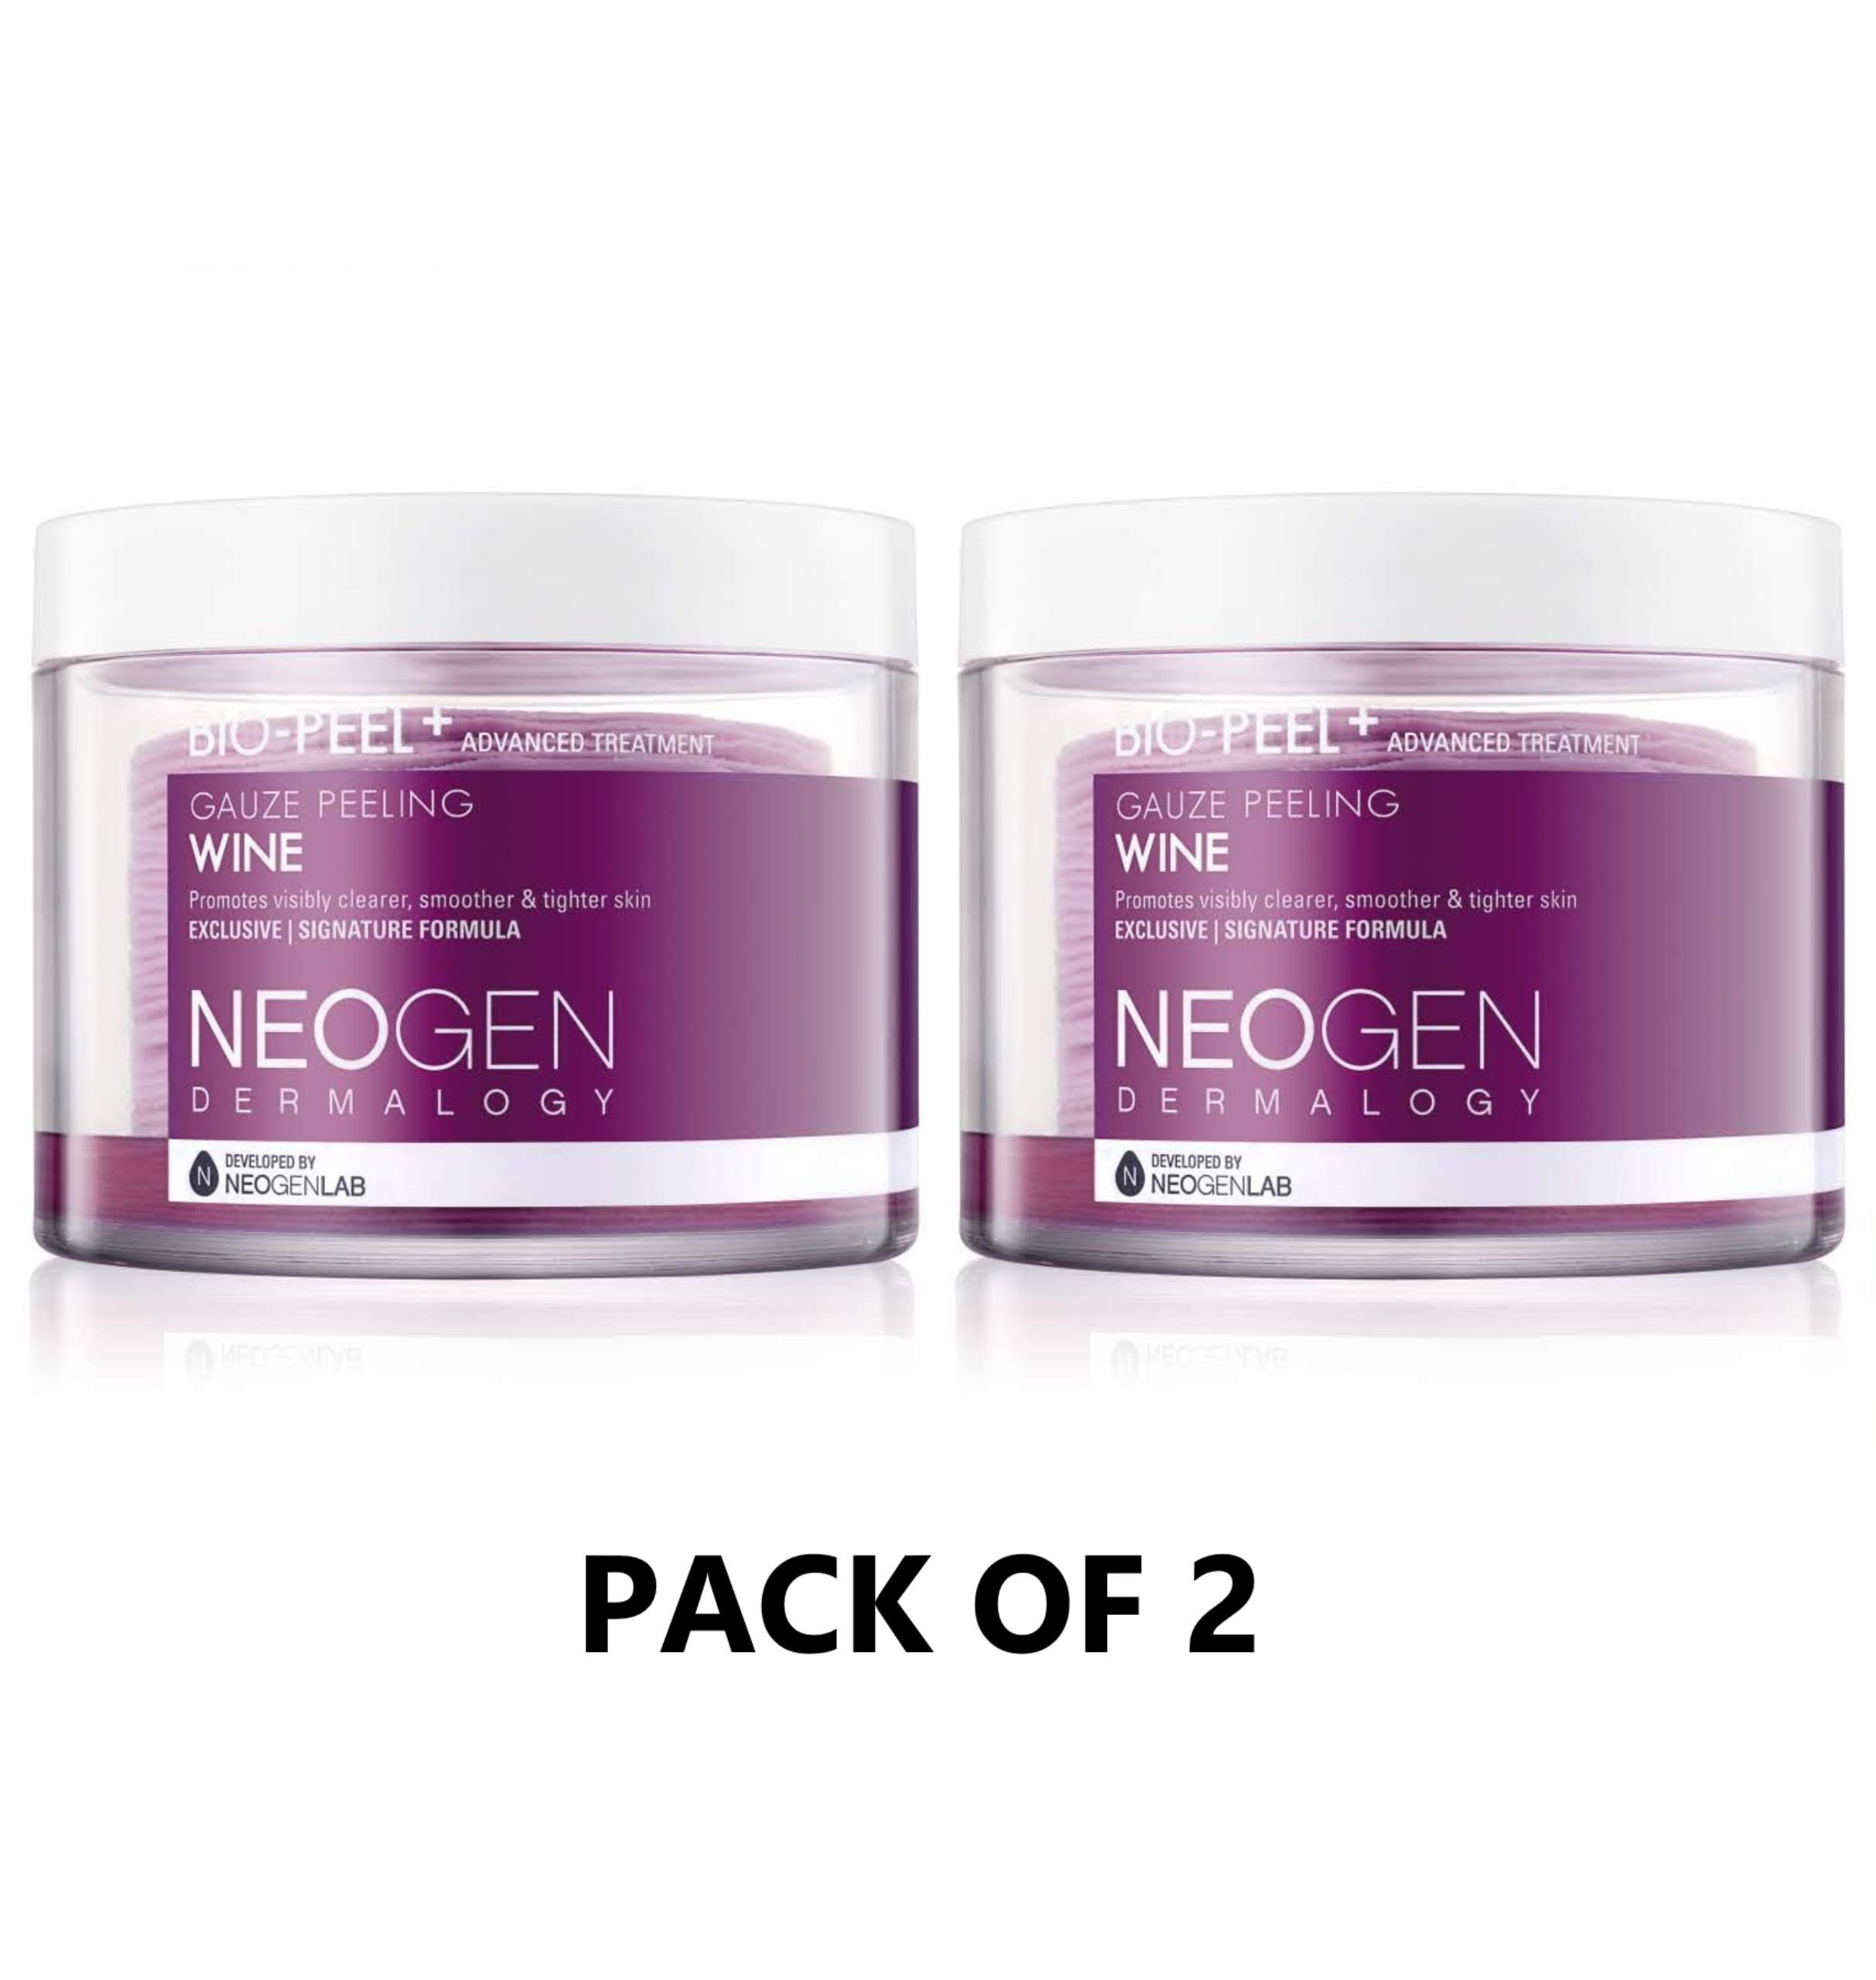 Neogen Dermalogy Bio-Peel Gauze Peeling Wine (Pack of 2) by Neogen Skin